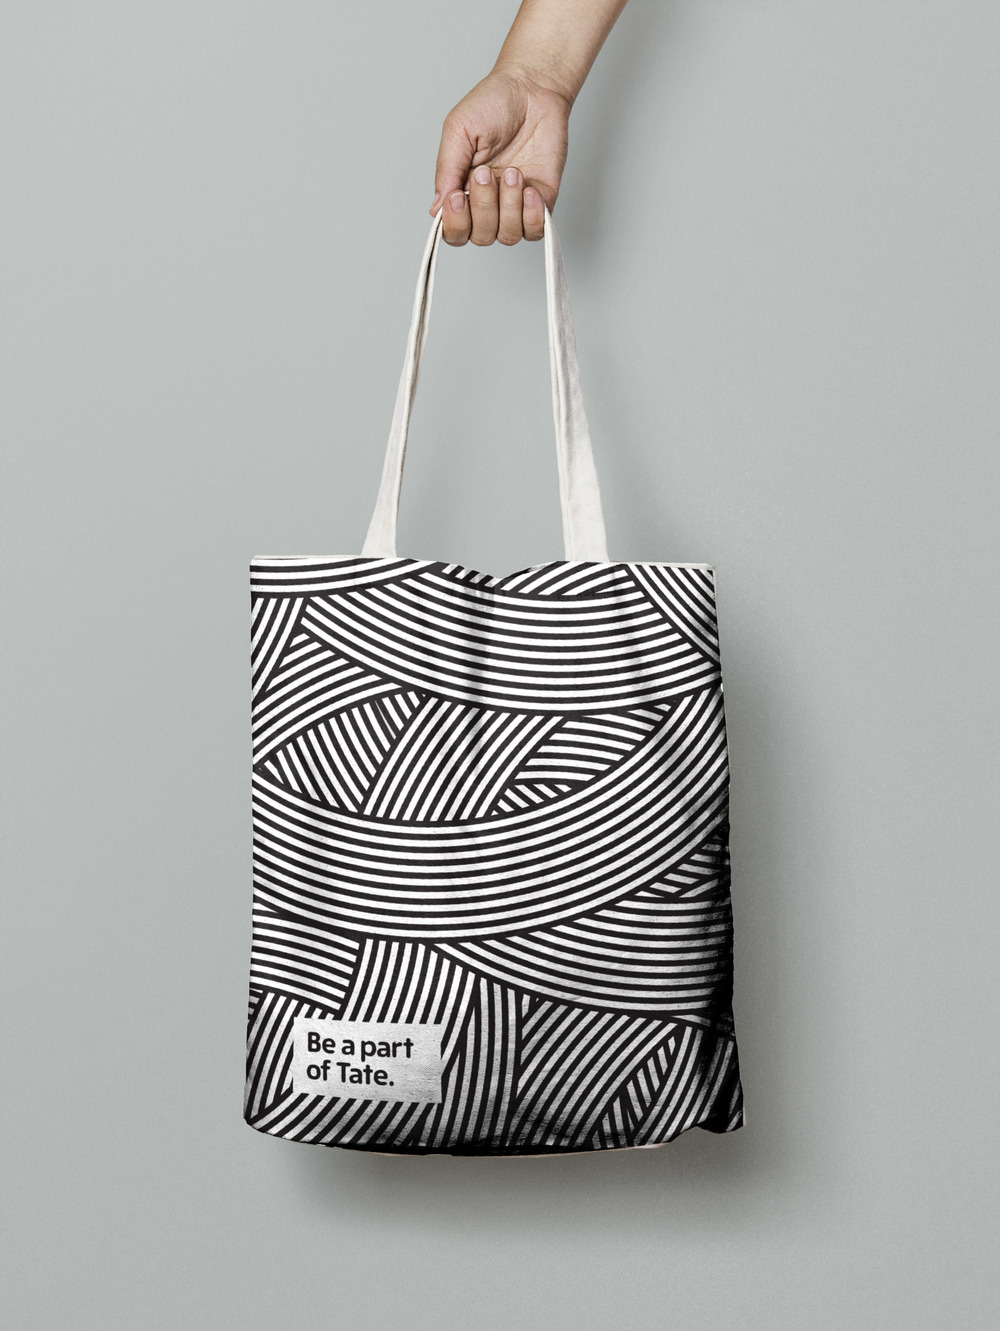 JimLambie_Canvas Tote Bag MockUp.jpg